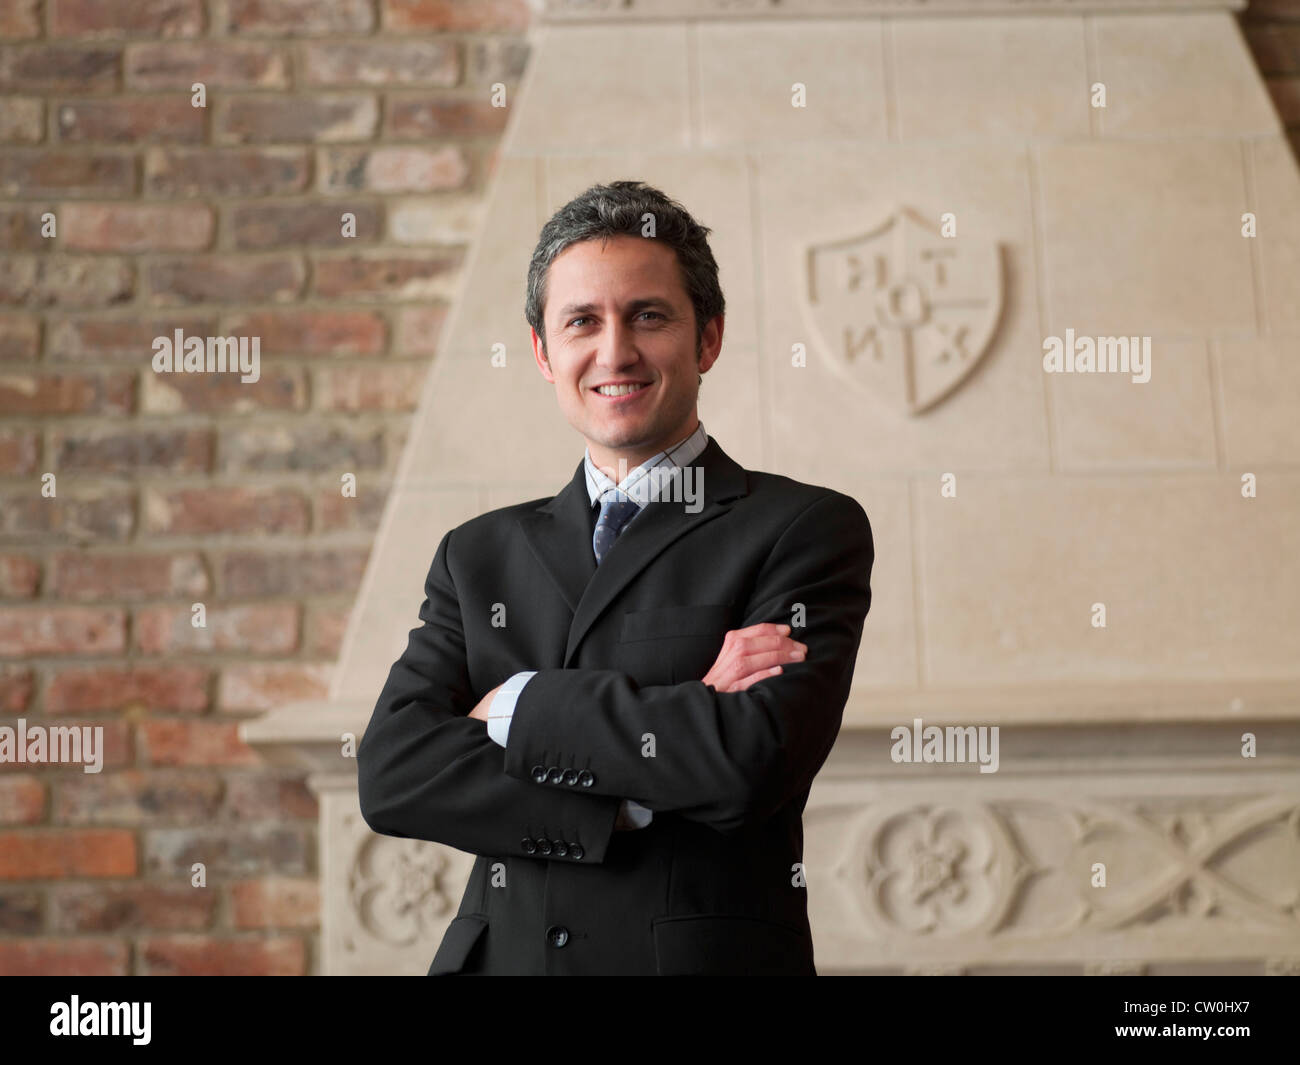 Businessman standing with arms crossed - Stock Image